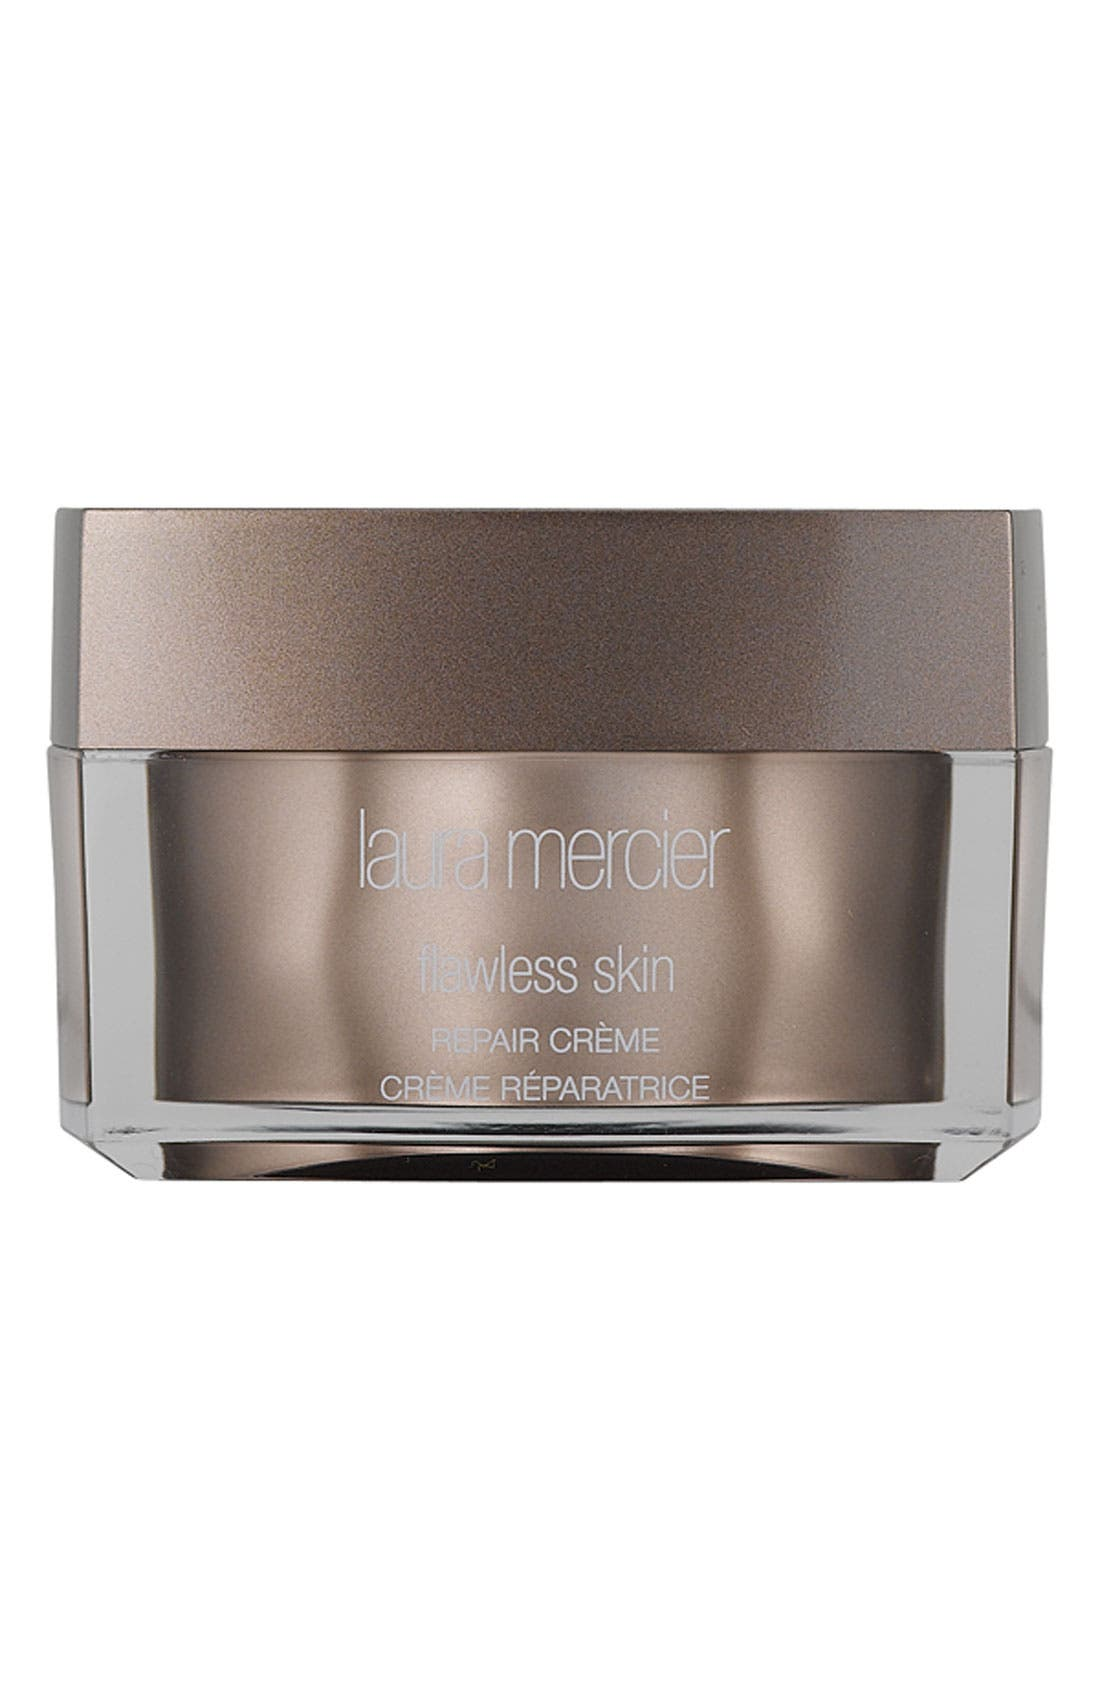 'Flawless Skin' Repair Crème,                             Main thumbnail 1, color,                             NO COLOR